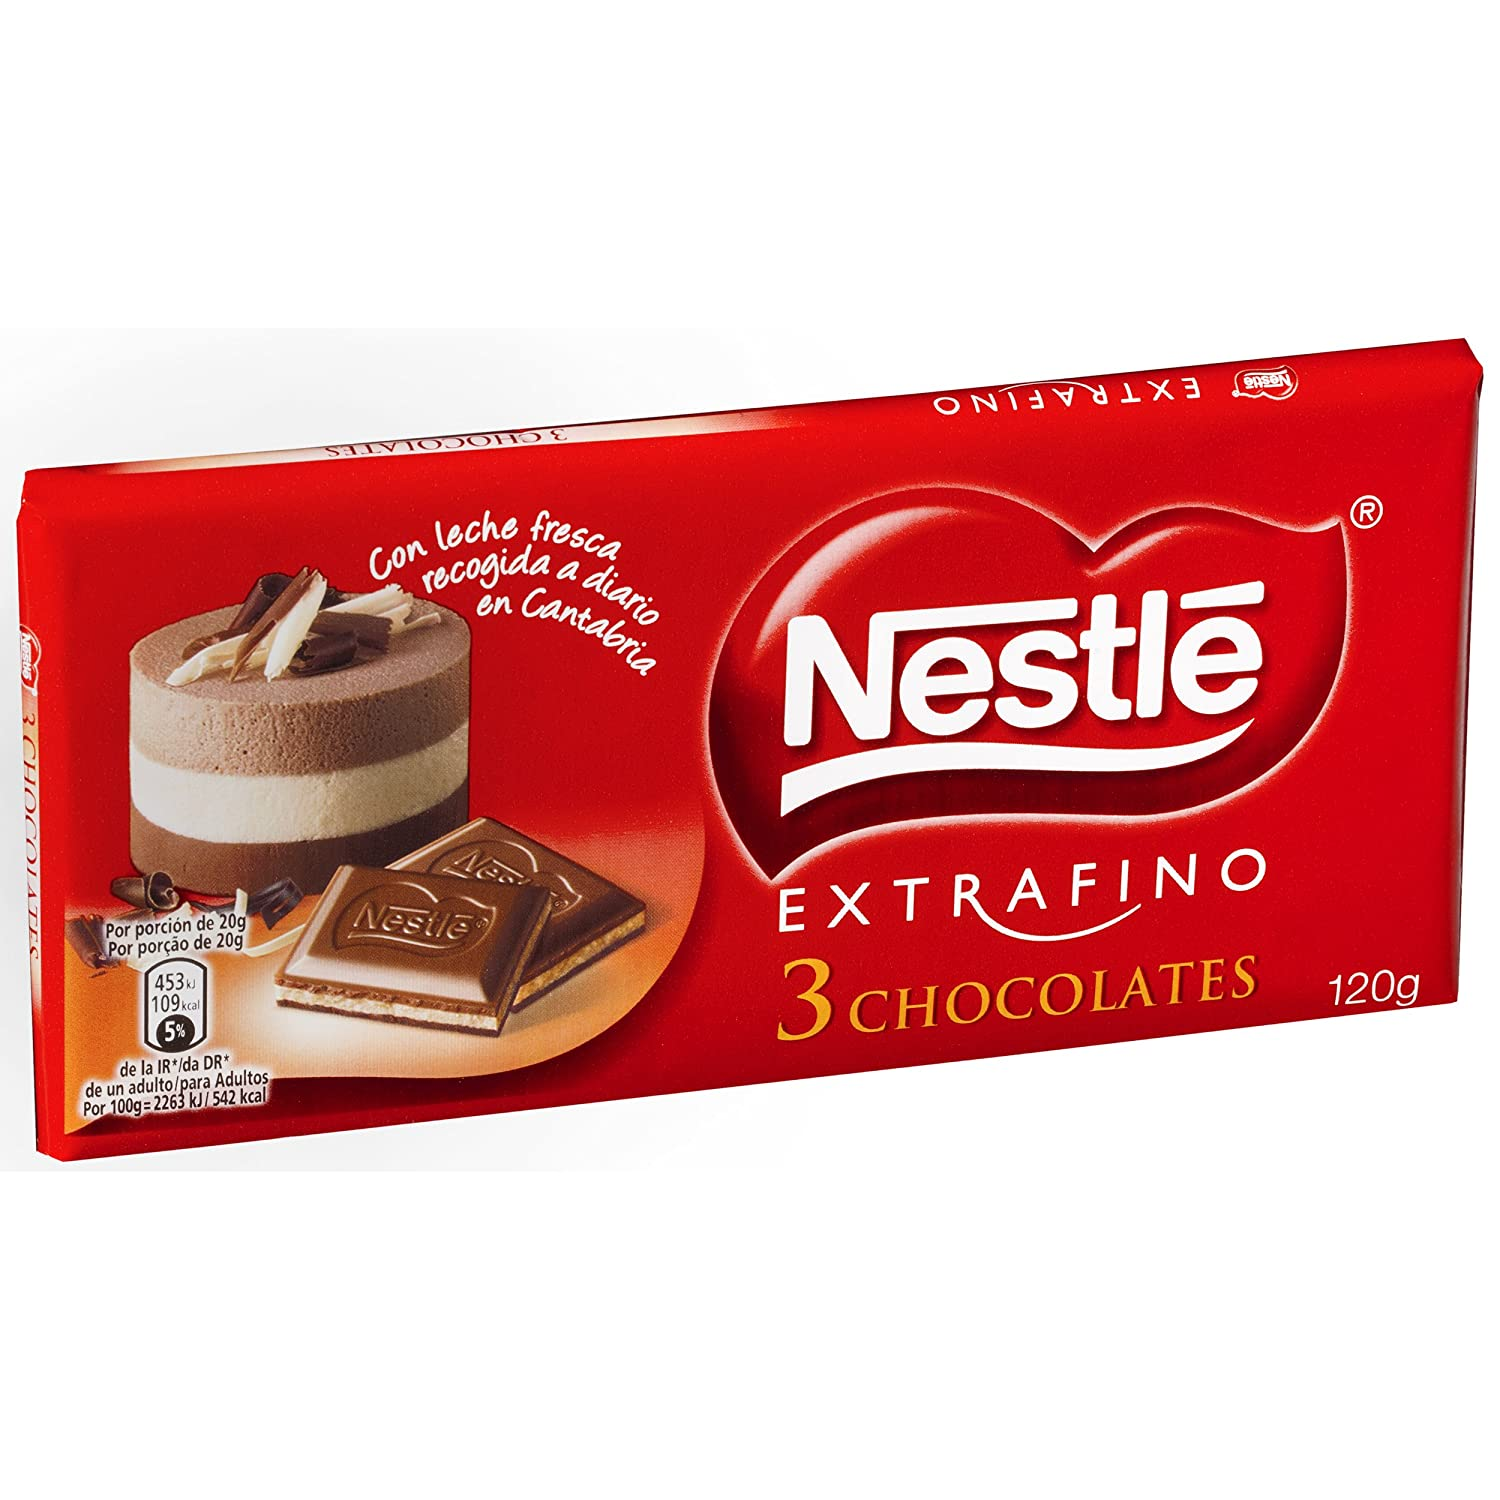 Nestlé - Extrafino - 3 Chocolates - Tableta de Tres Chocolates - 120 g: Amazon.es: Alimentación y bebidas